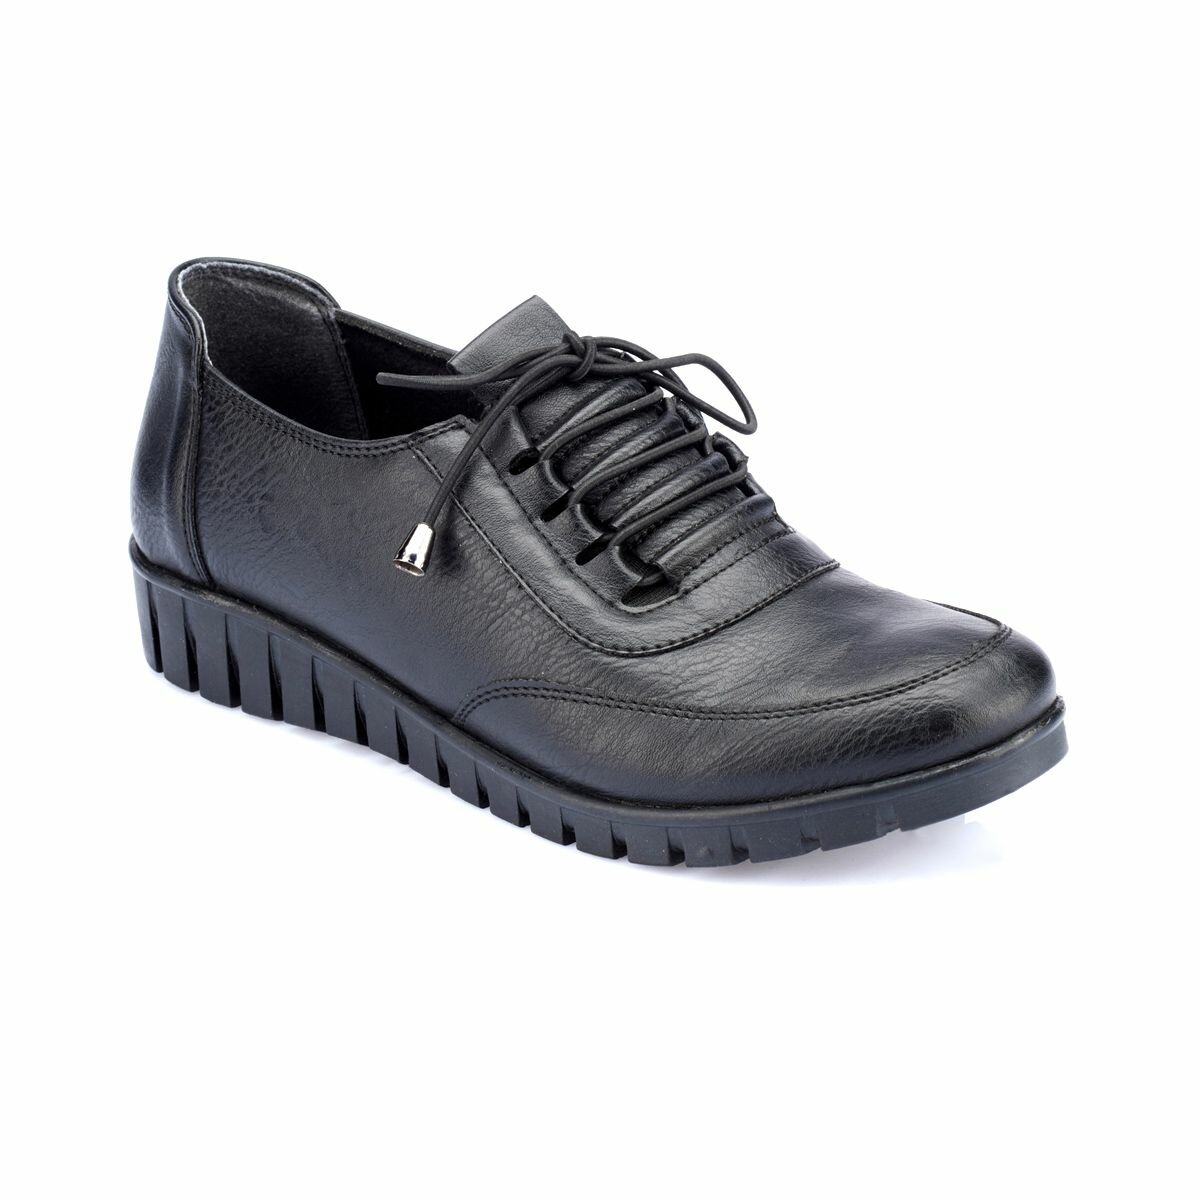 FLO 82.156975.Z Black Women Shoes Polaris